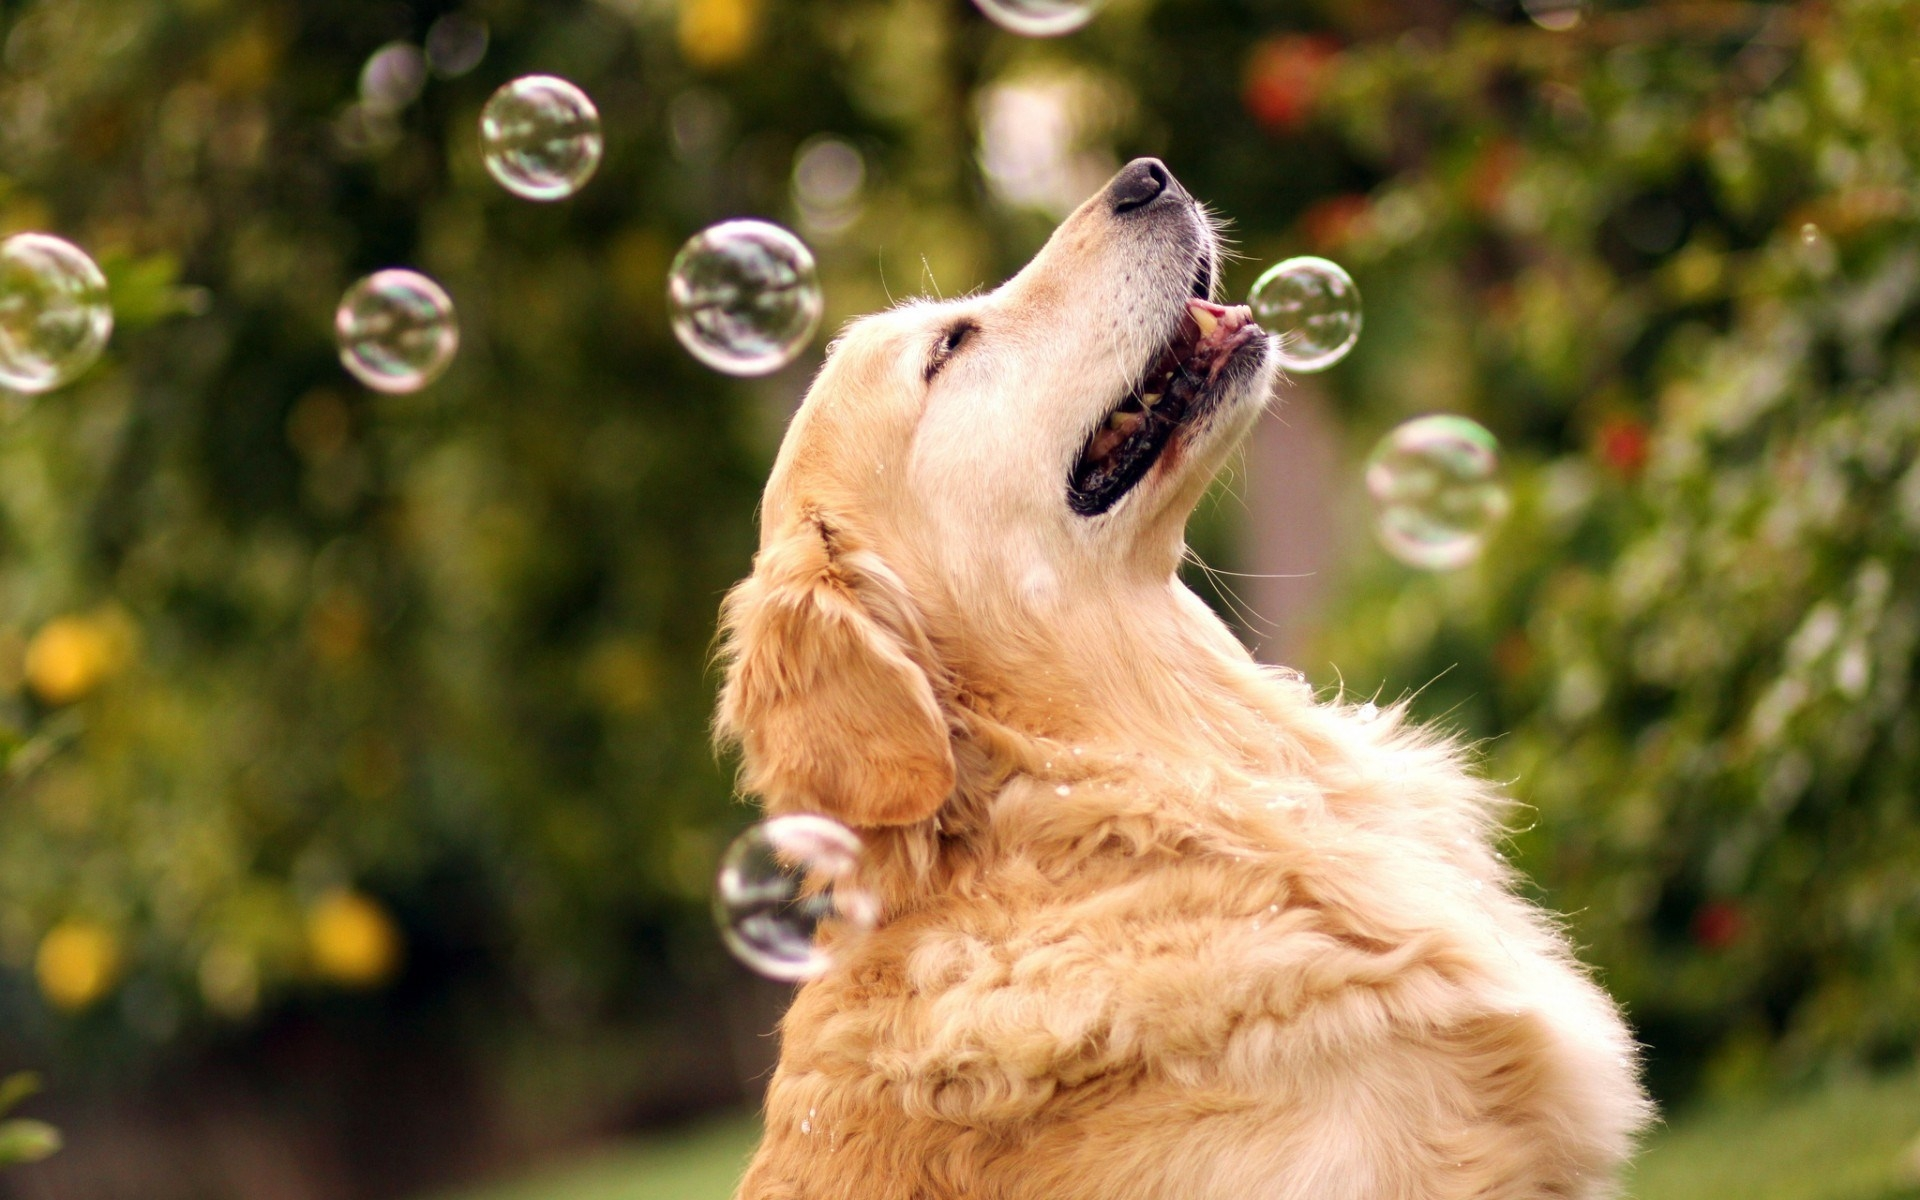 How to tell if your dog is stressed?